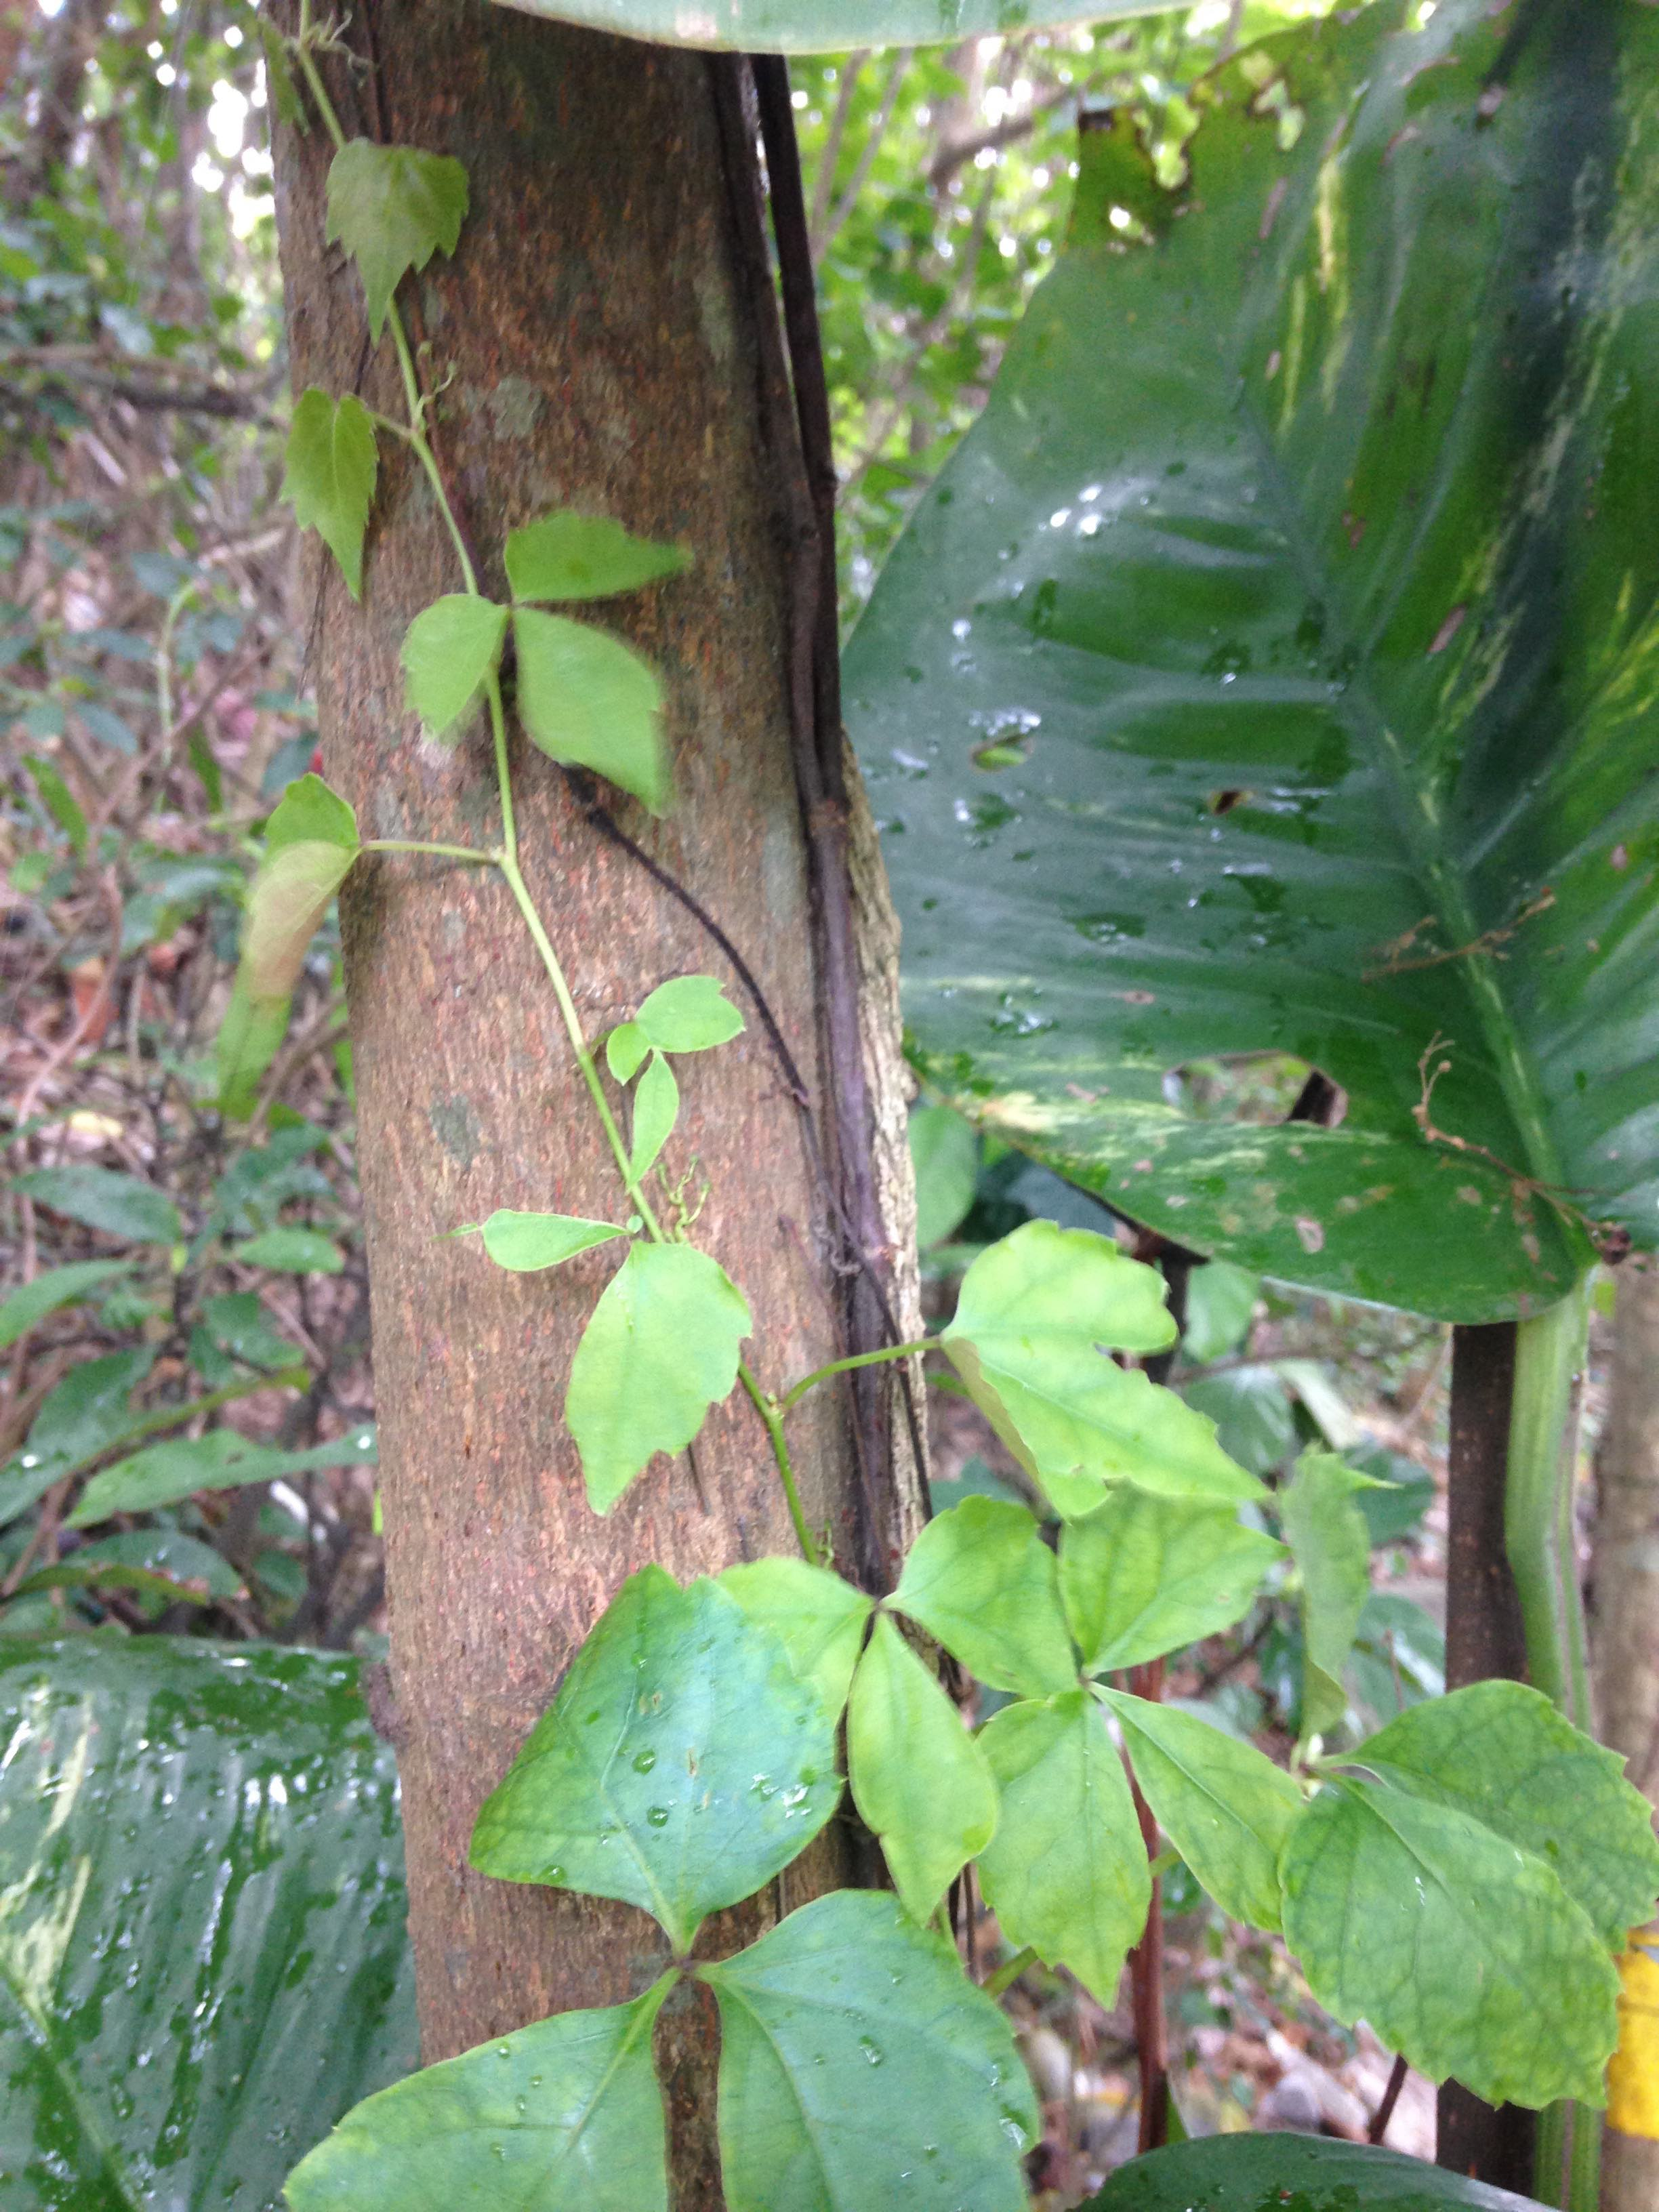 Vine grows up a tree.